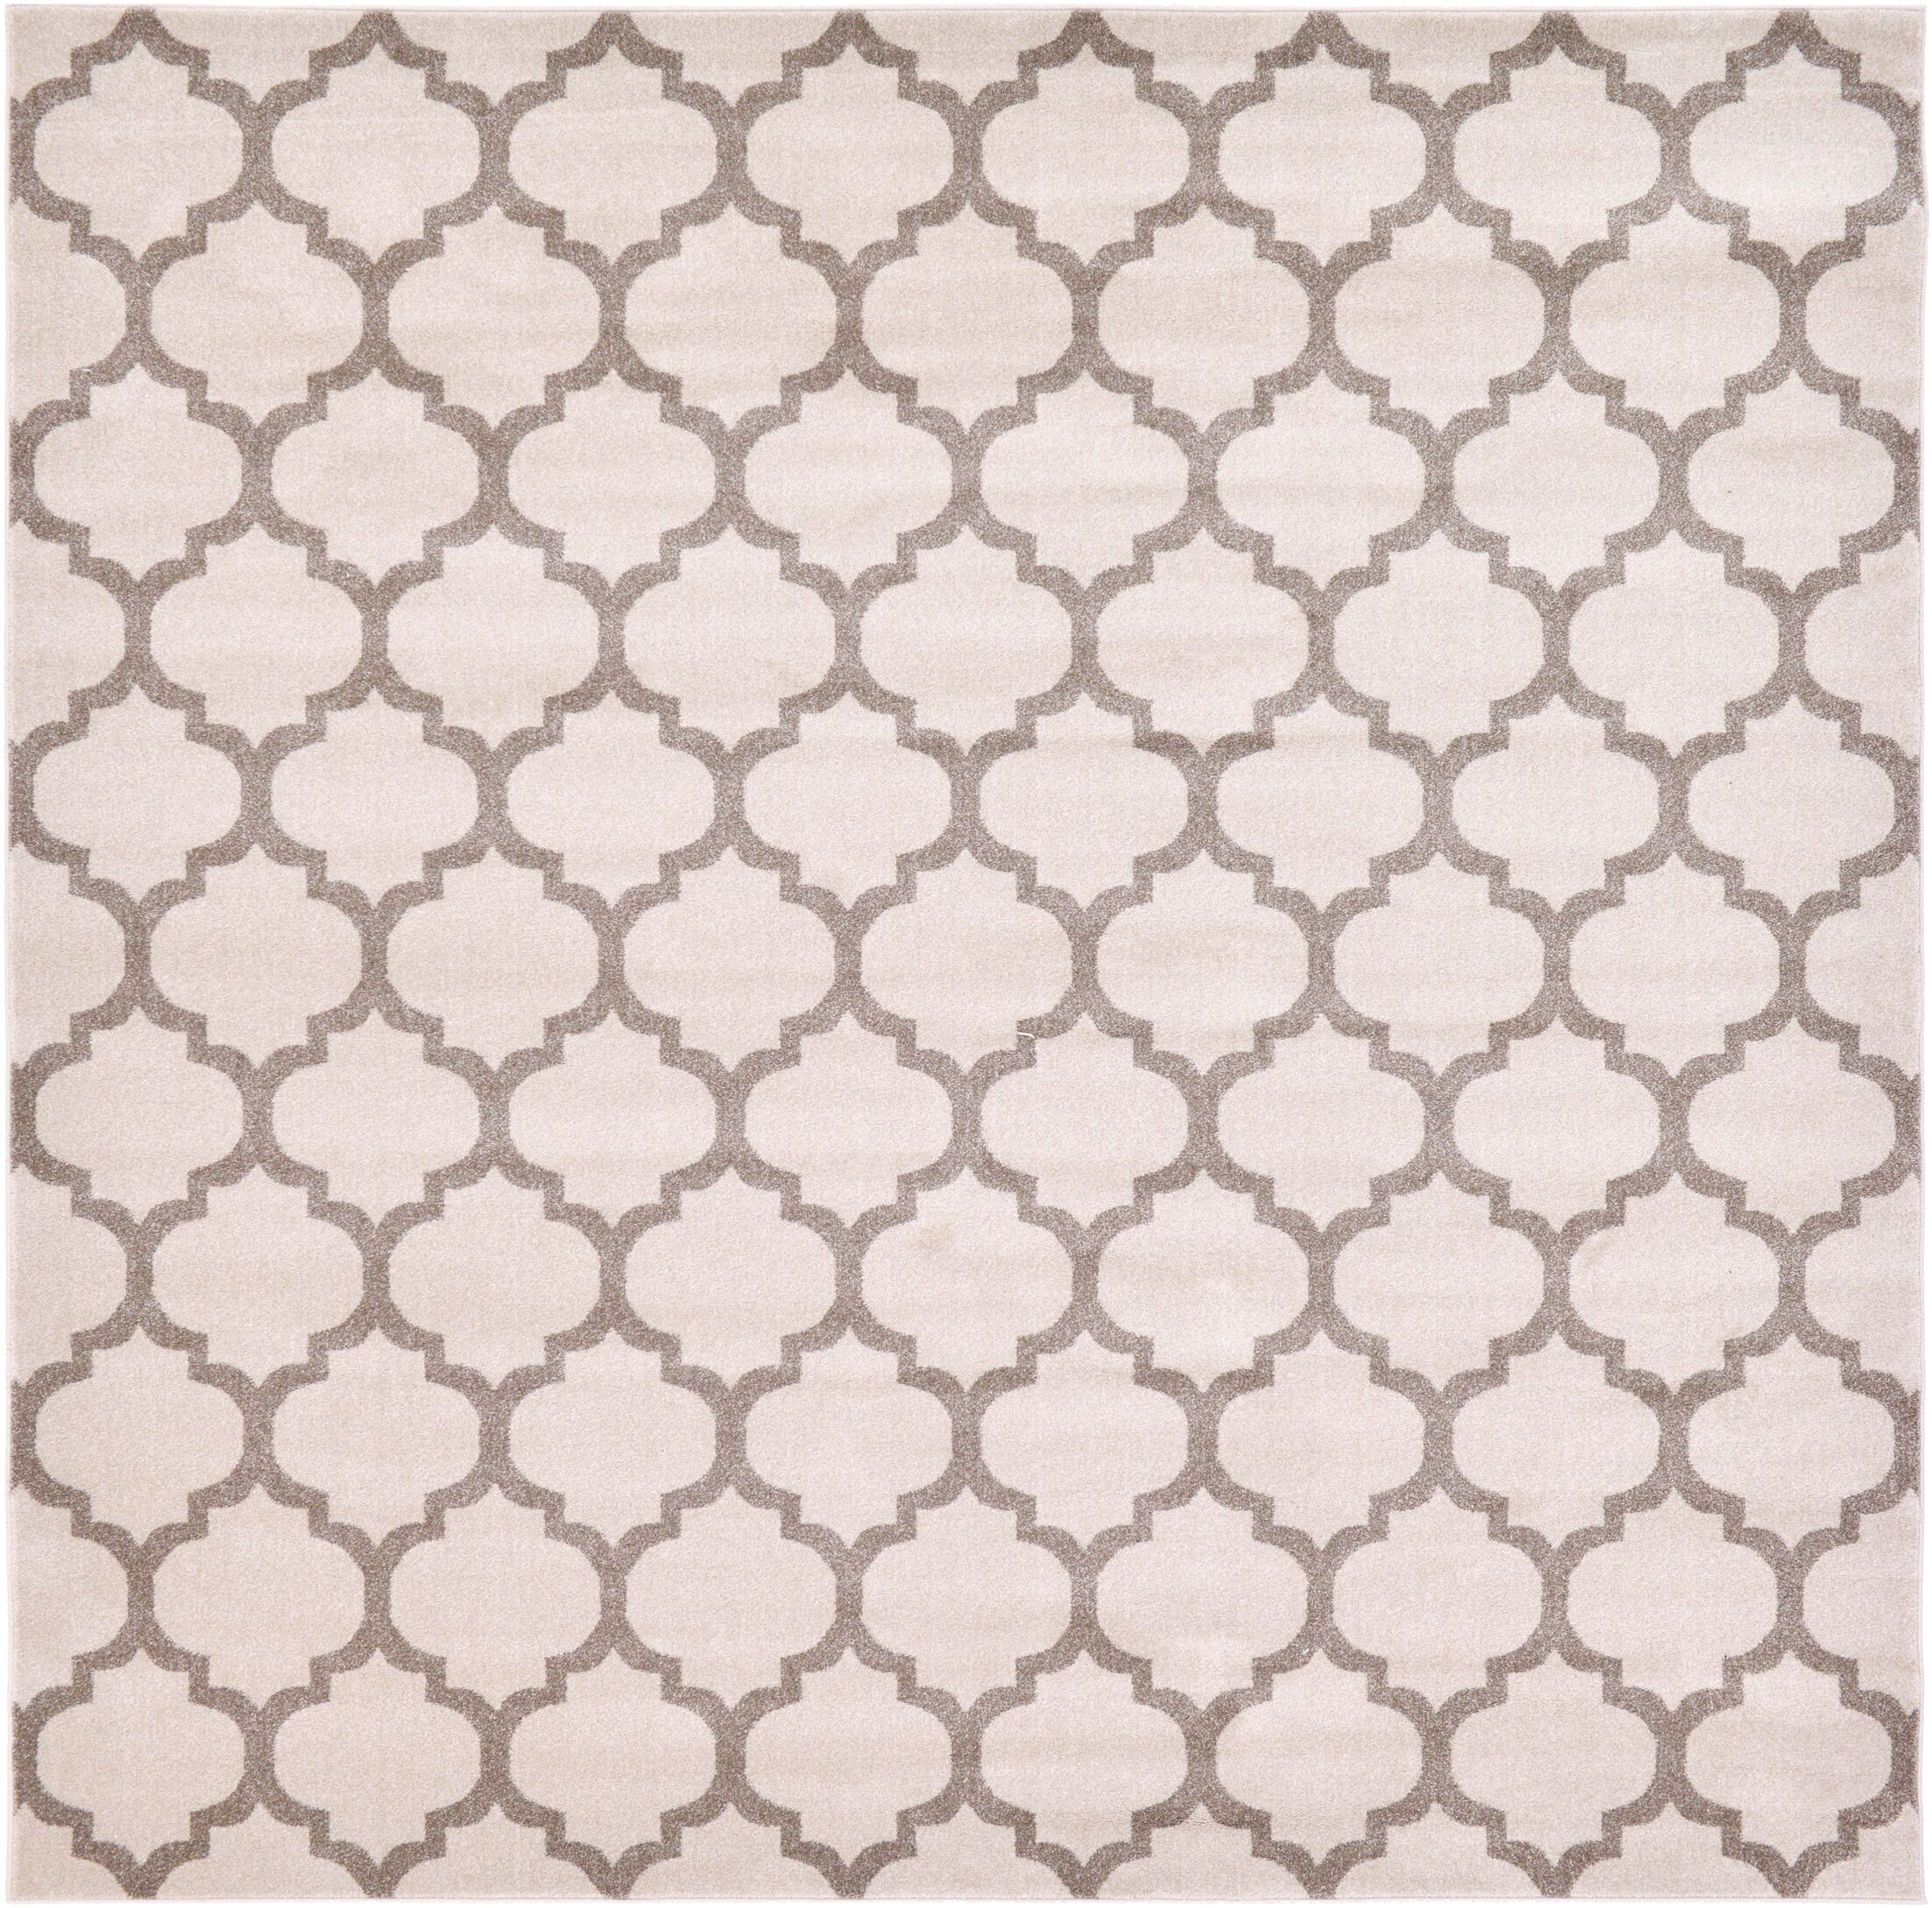 Moore Beige & Tan Area Rug Rug Size: Square 10'